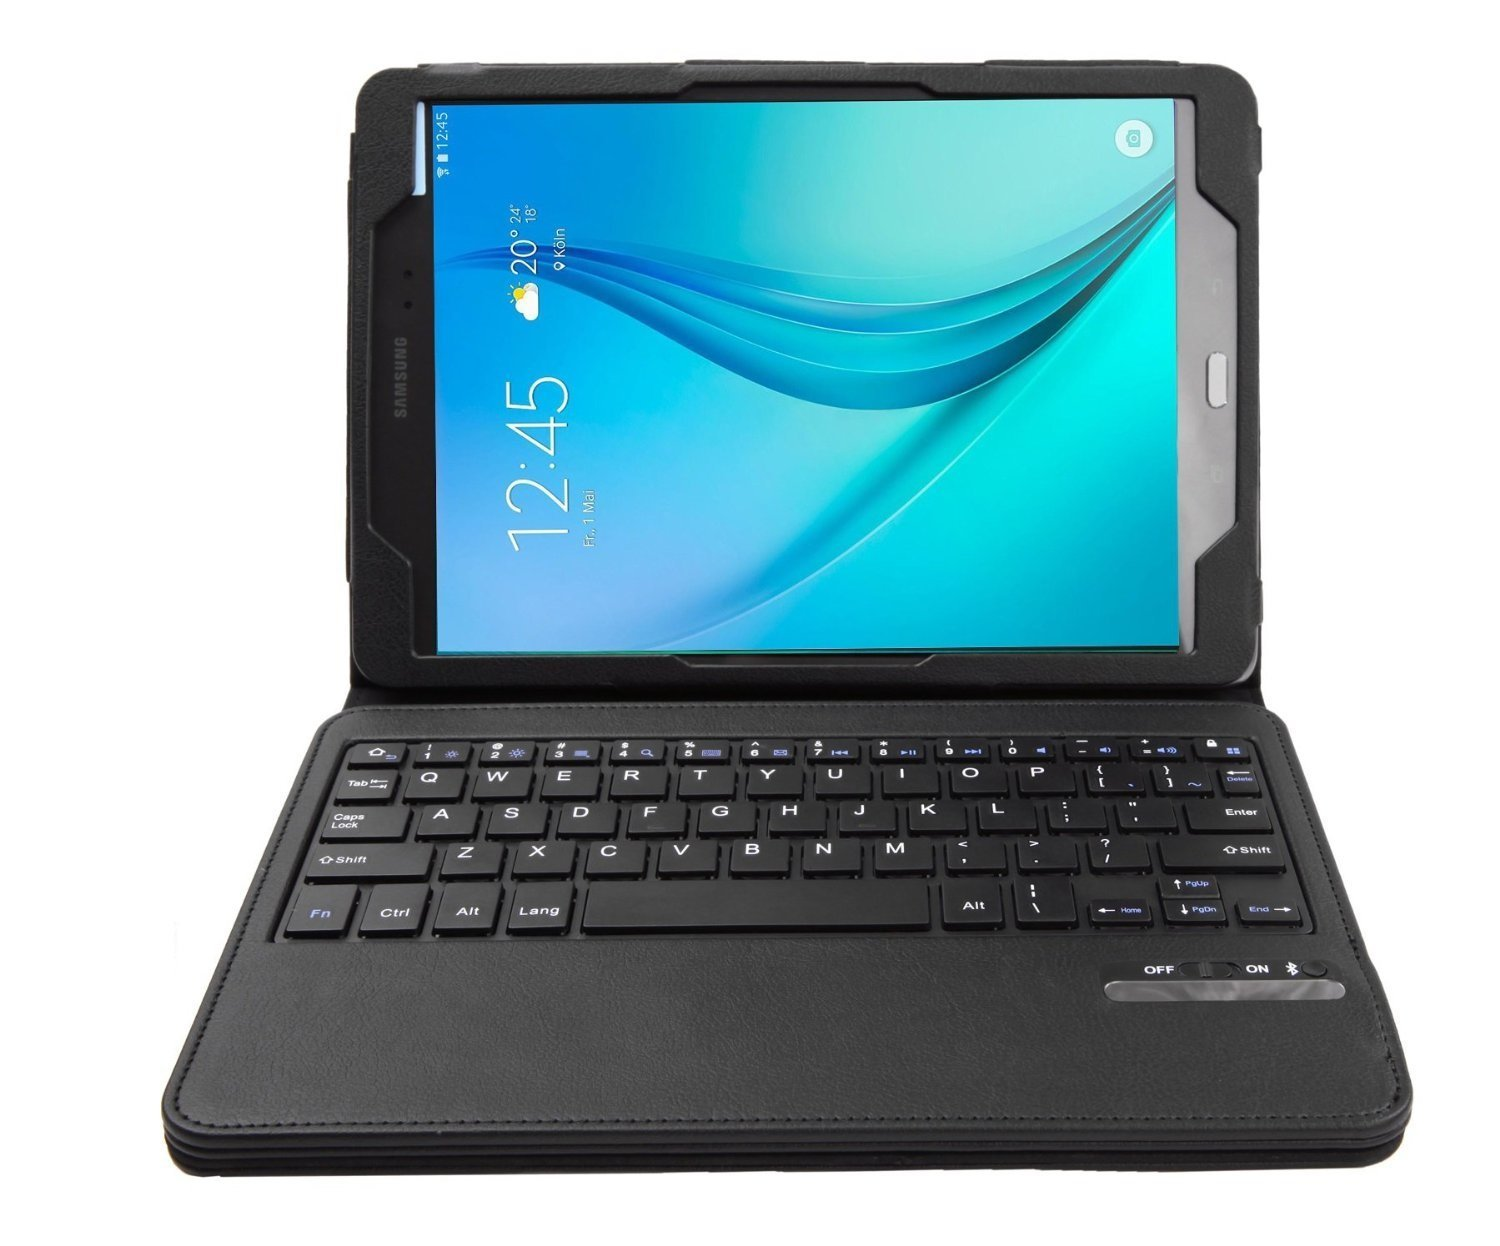 IVSO Galaxy Tab A 9.7 Keyboard case - Ultra-Thin High Quality DETACHABLE Bluetooth Keyboard Stand Case / Cover for SamSung Galaxy Tab A SM-T550NZWAXAR 9.7-inch Tablet (Black)